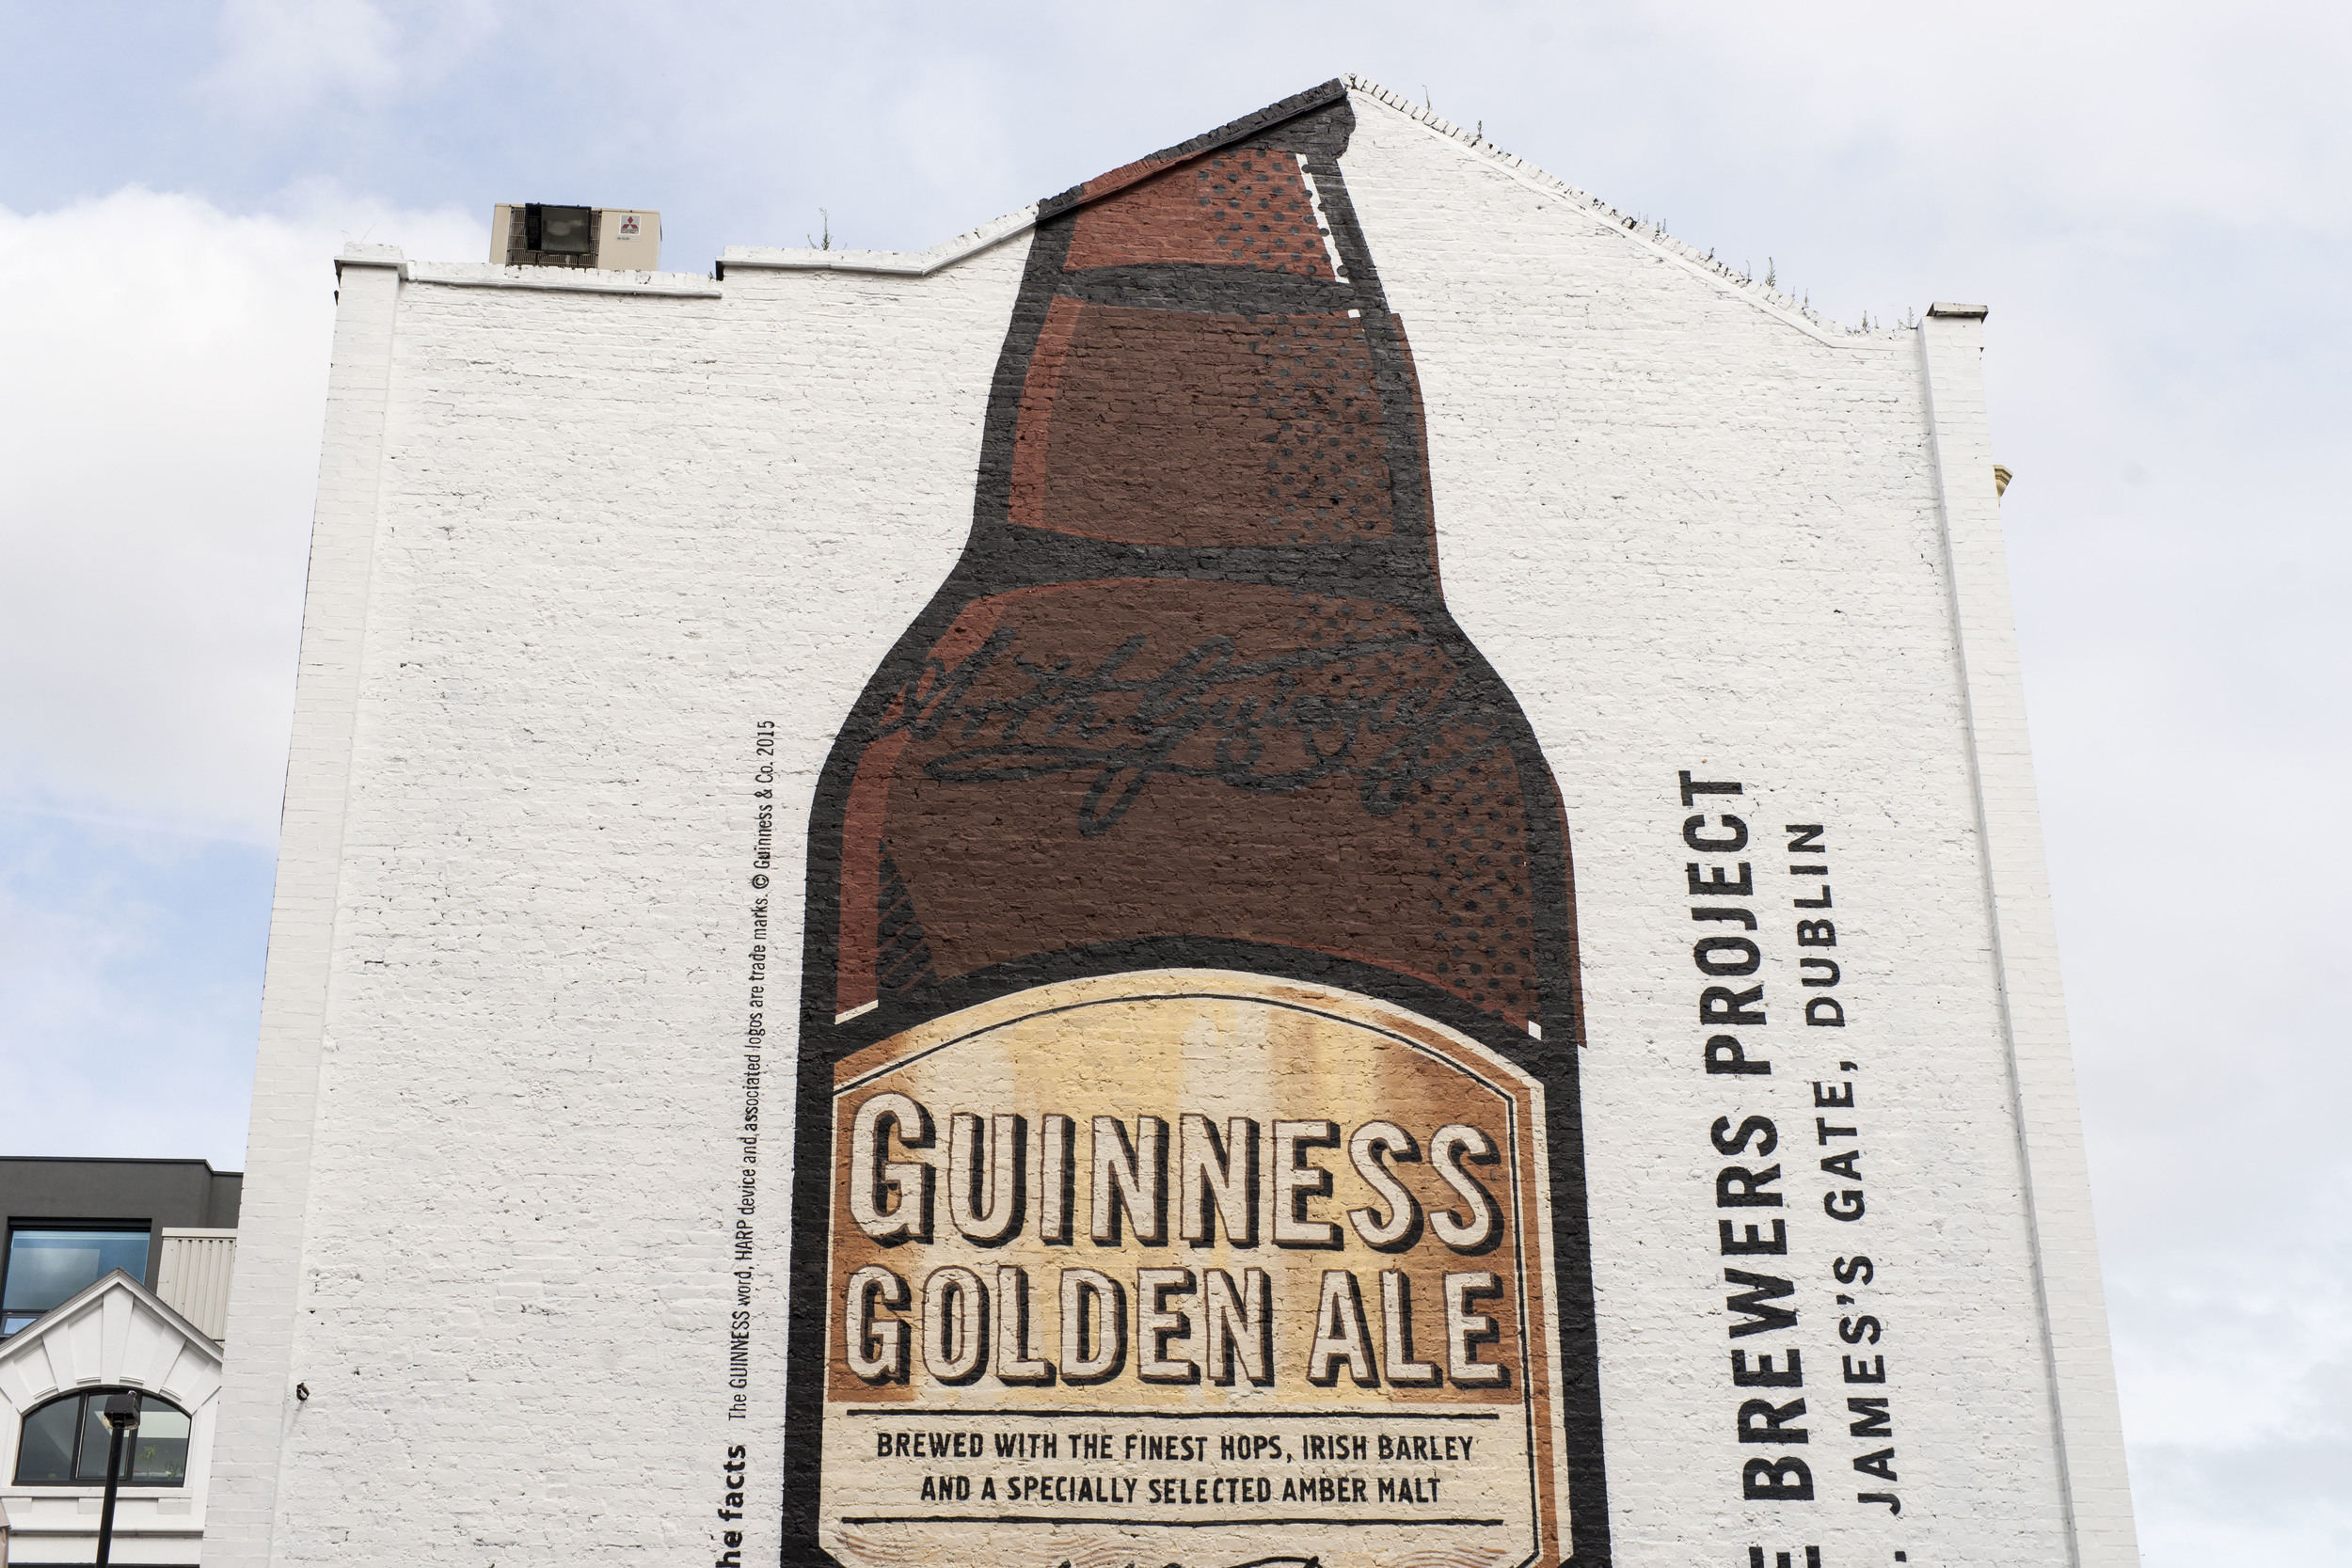 GUINNESS - GOLDEN ALE